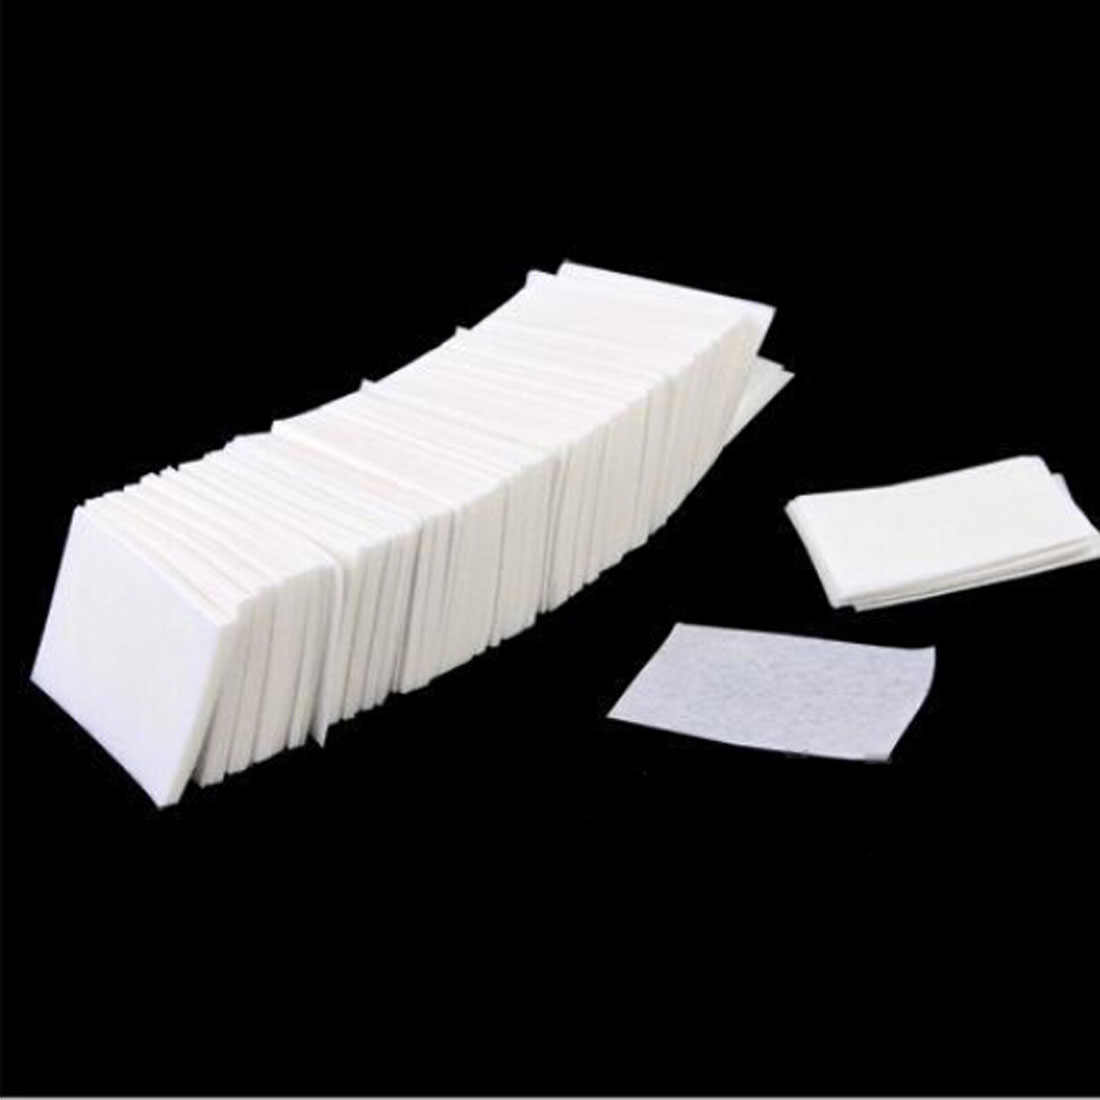 400pcs/set Women GIRLS Nail Art Remover Manicure Polish Gel Wipes Cotton Lint Cotton Pads Paper Acrylic Gel Tips